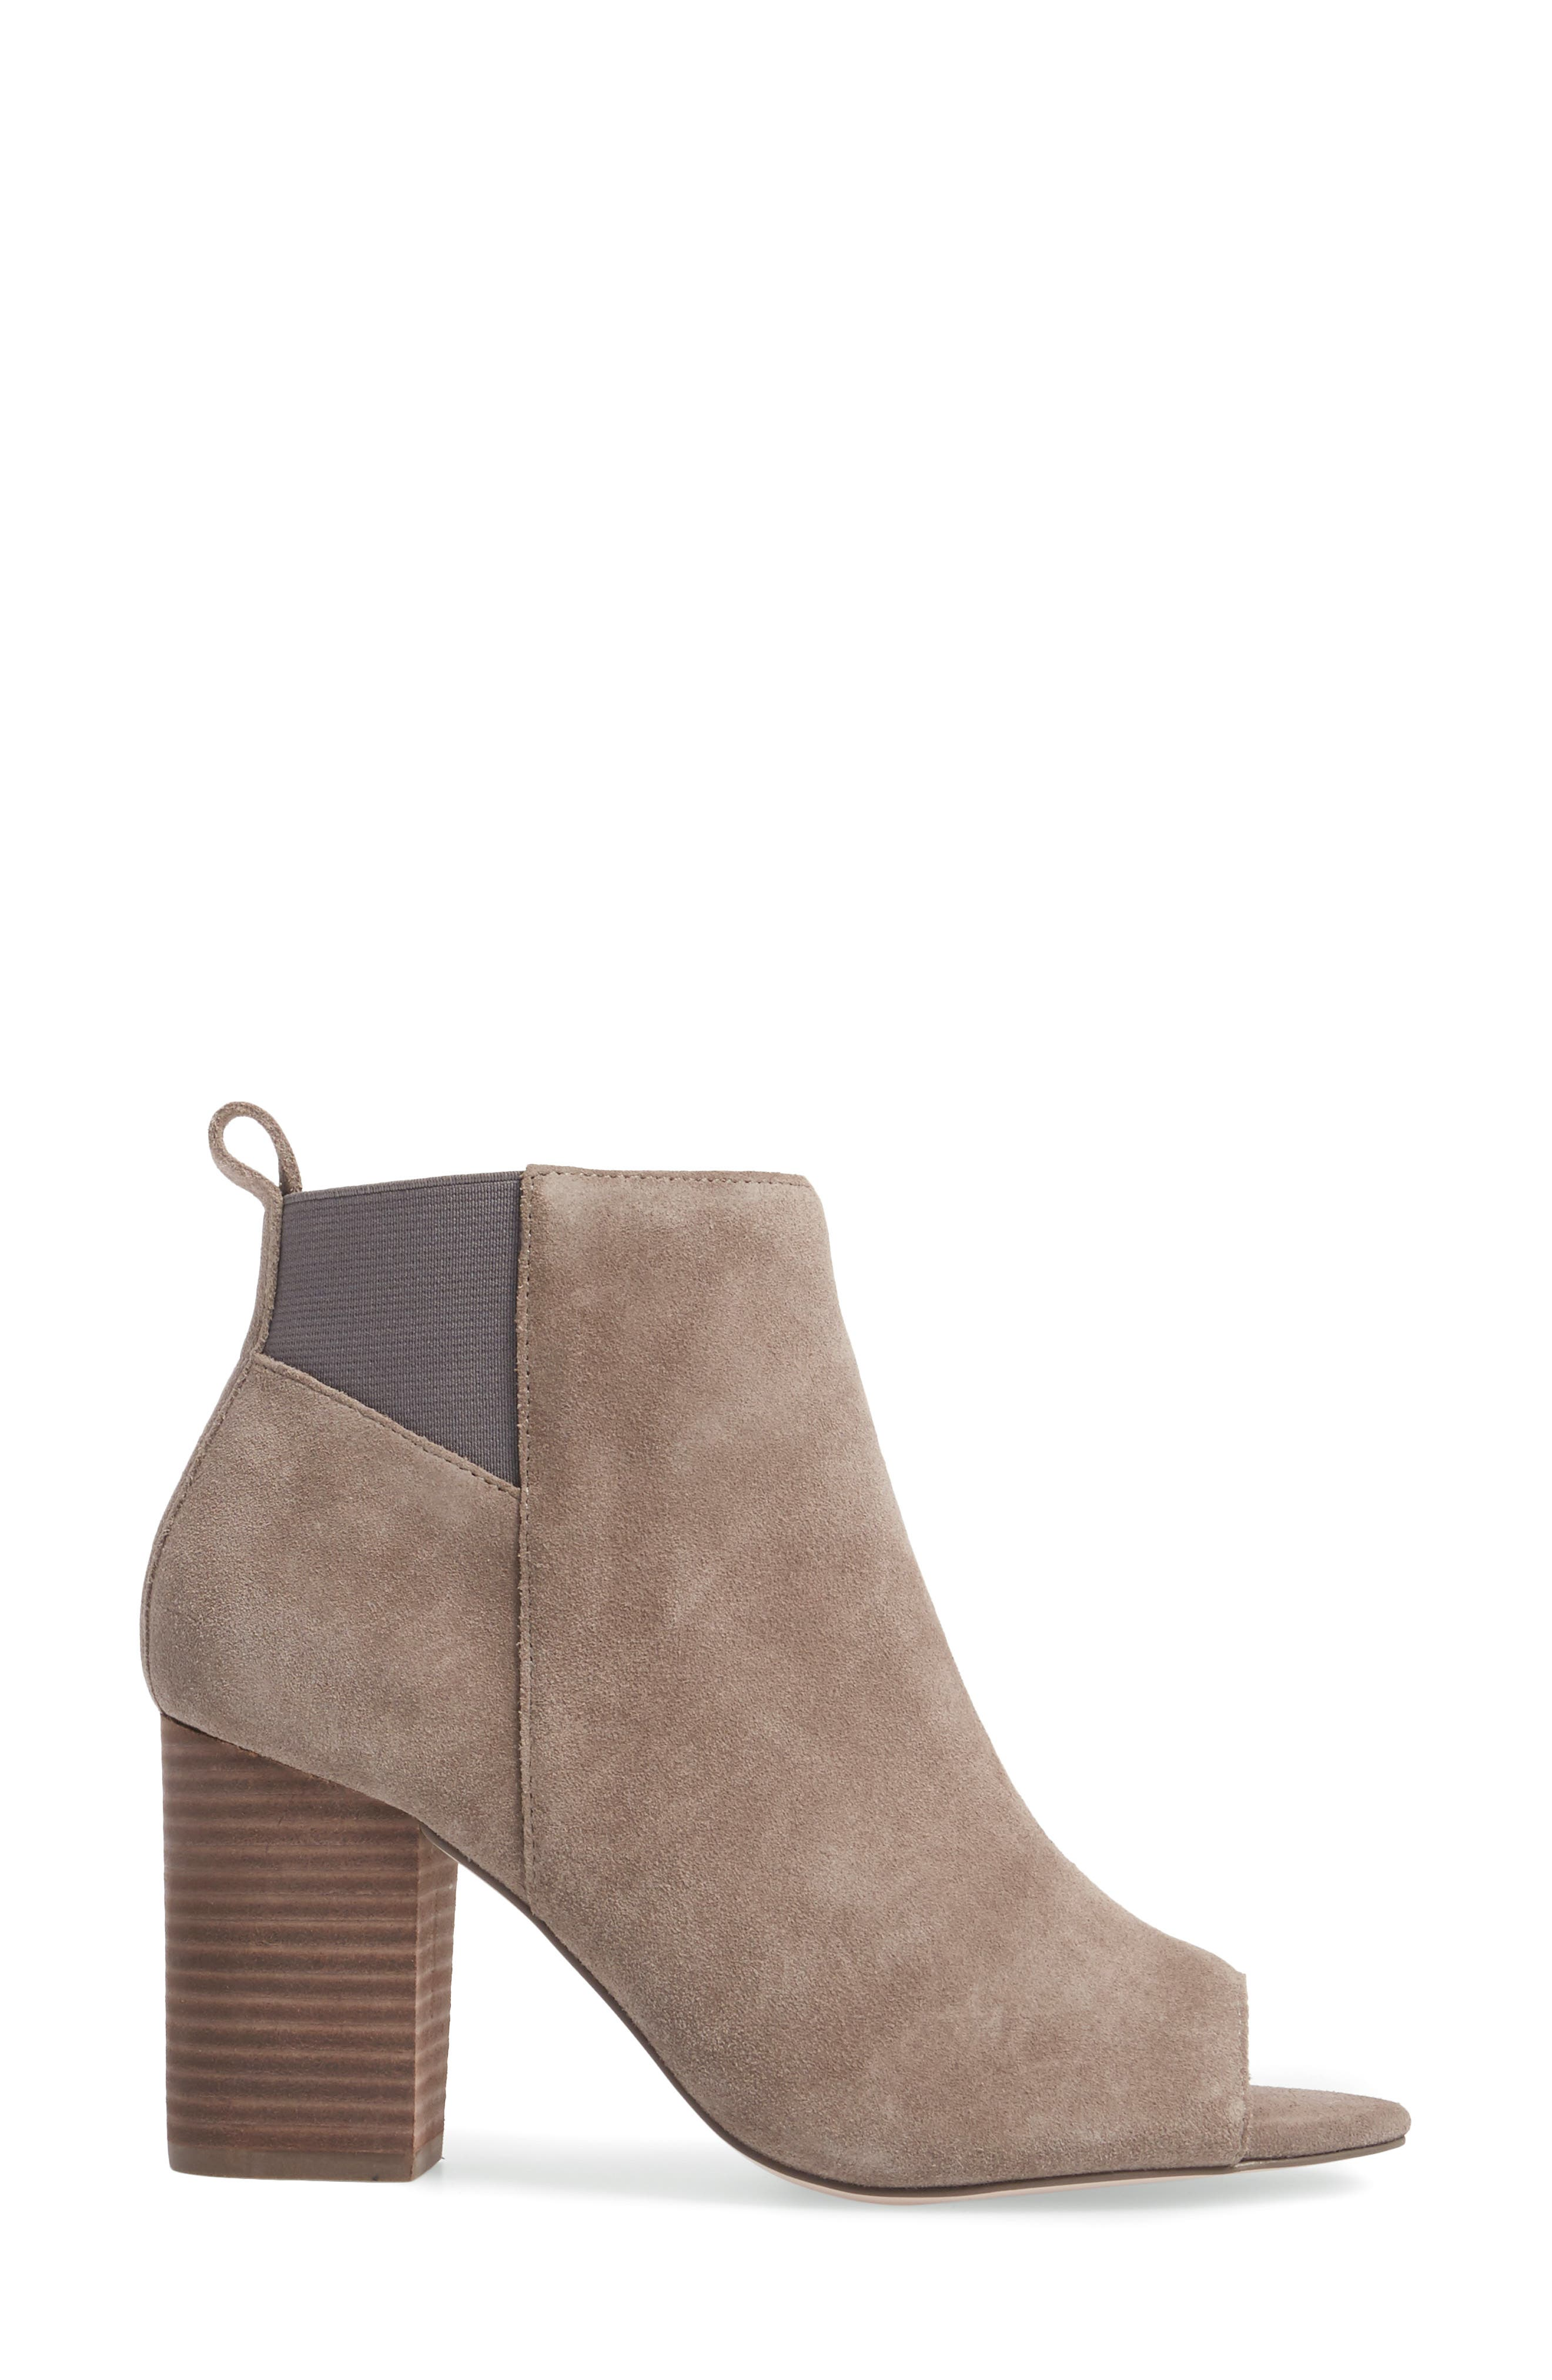 Vita Peep Toe Bootie,                             Alternate thumbnail 3, color,                             Mushroom Suede